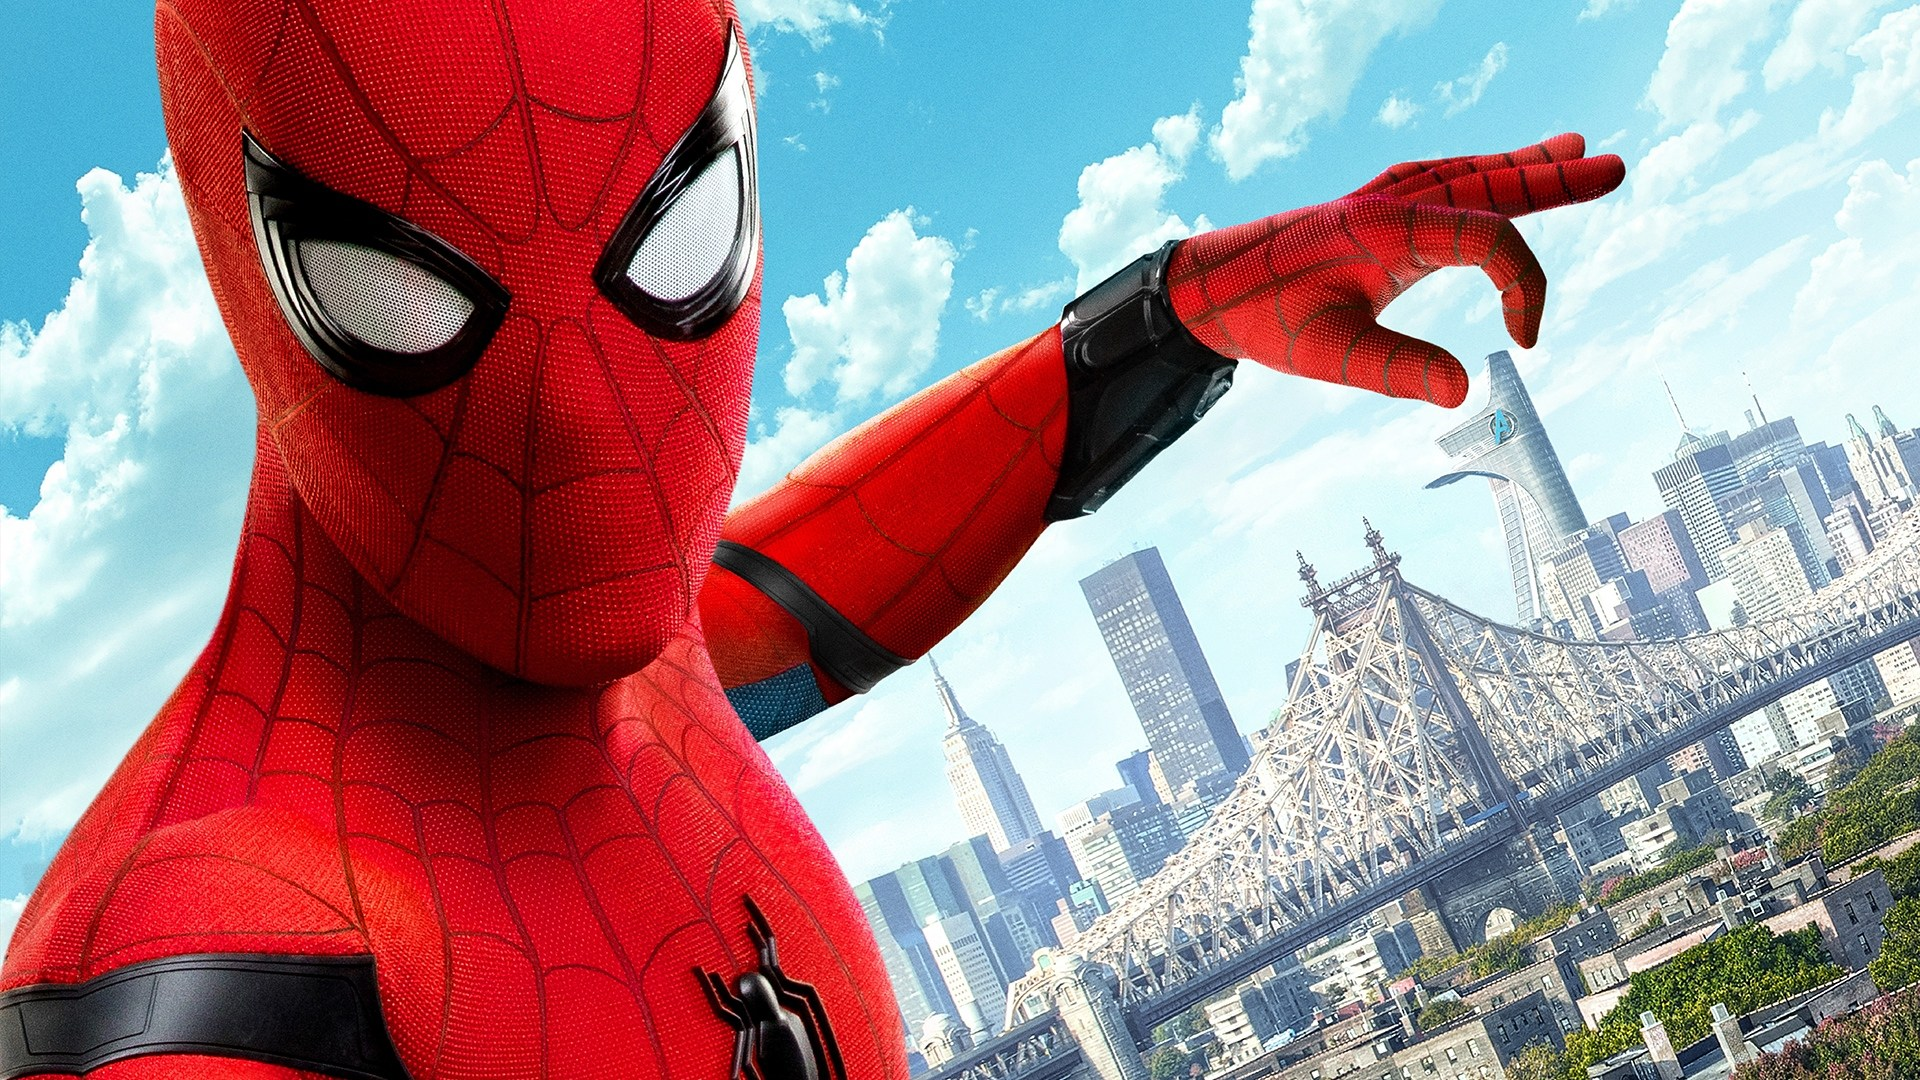 Spider-Man: Far From Home será el verdadero final de la Fase 3 del MCU y no Avengers: Endgame